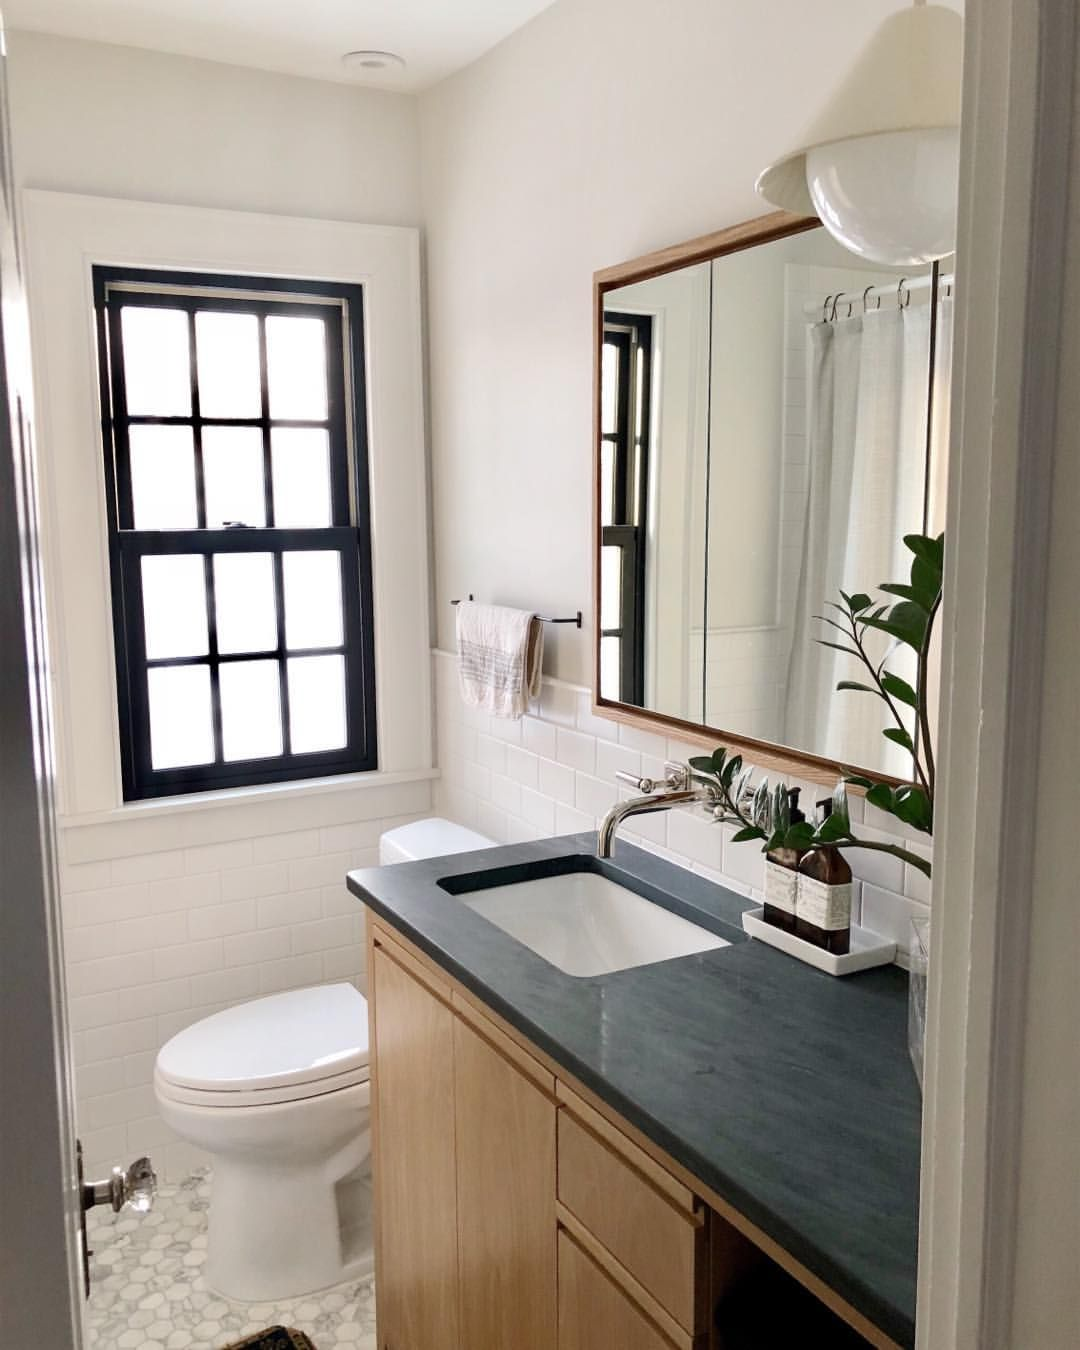 This Little Bathroom Was An Add On To Our Original Renovation Plans After We Realized It Would Be A Lot Simp Pretty Bathrooms Bathrooms Remodel Bathroom Decor